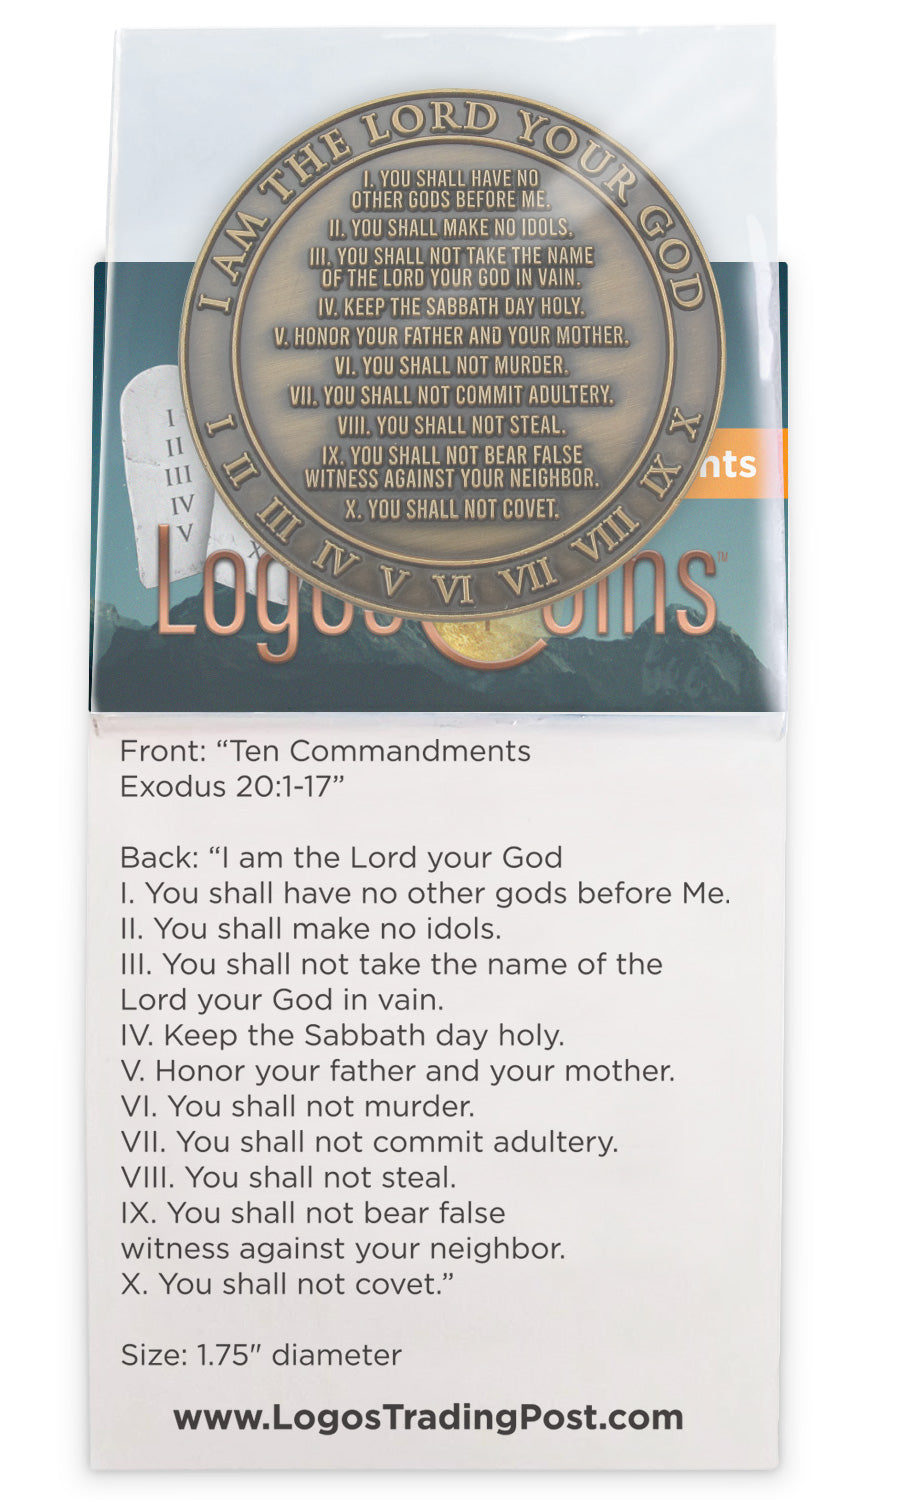 Back of Ten Commandments Antique Gold Plated Challenge Coin in packaging